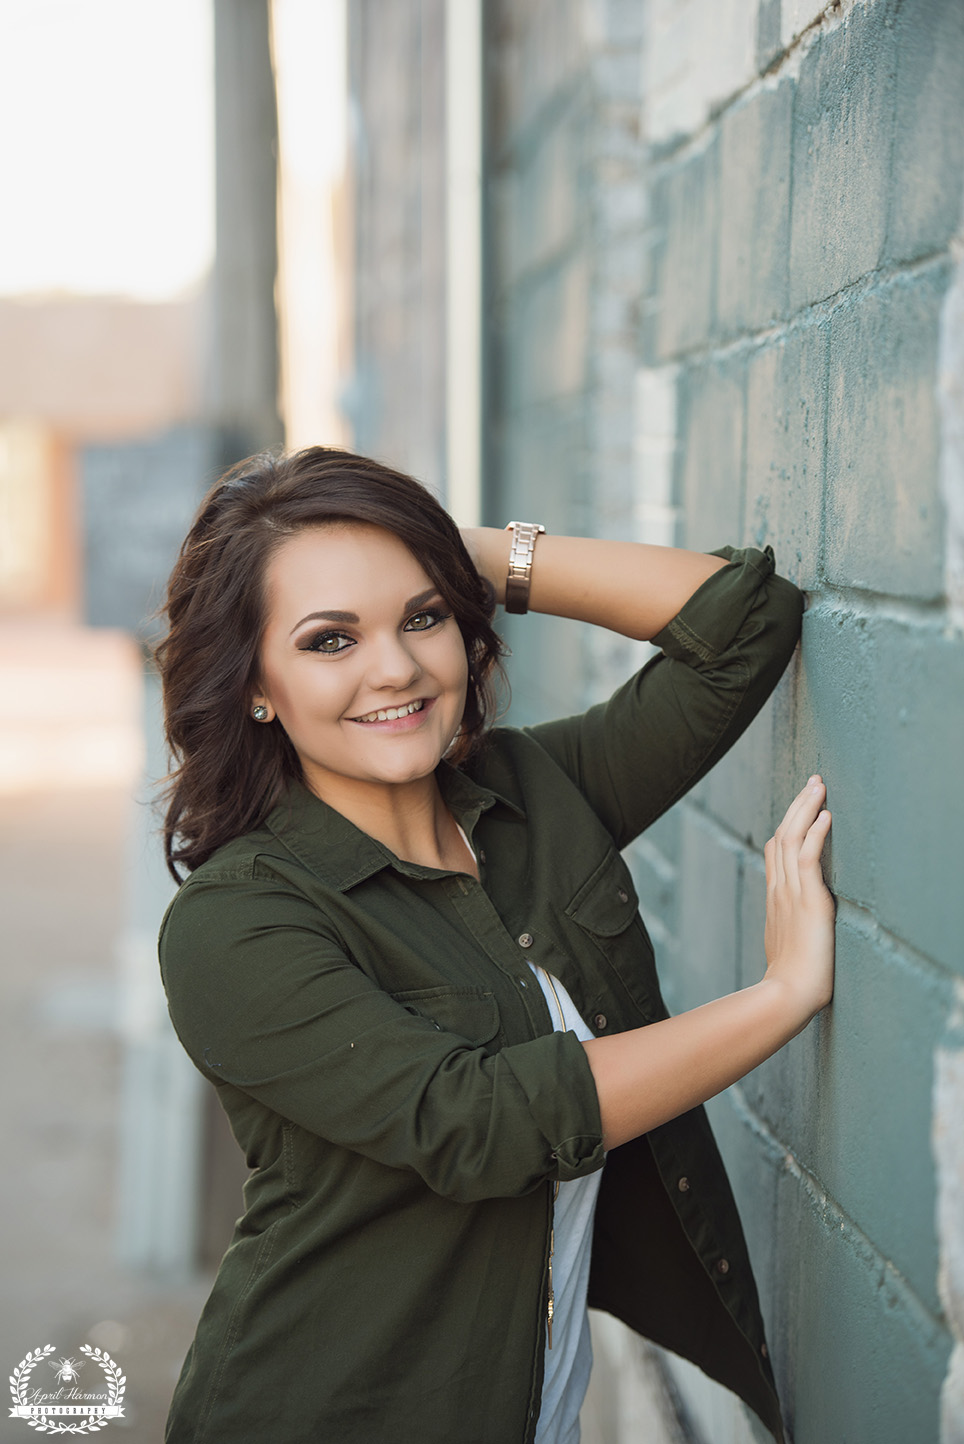 senior-photography-gardencity-ks-5.jpg